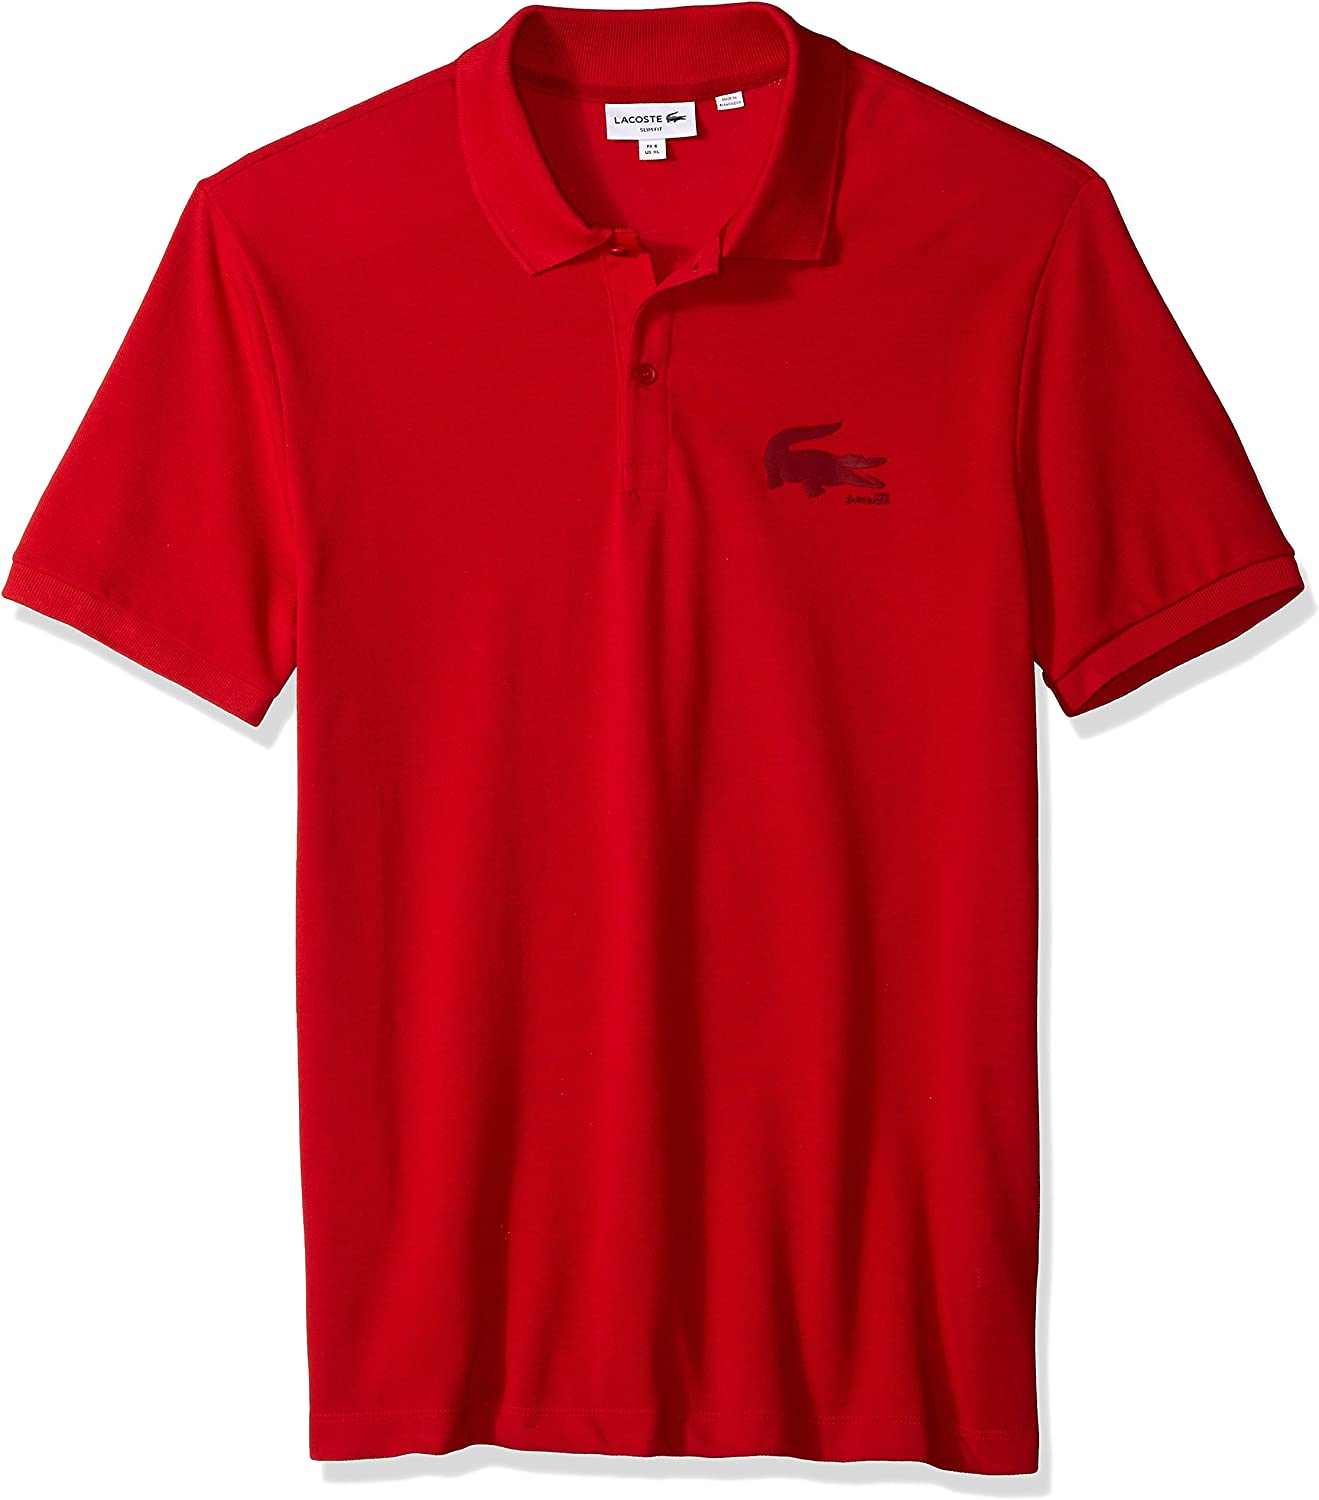 Lacoste Mens Short Sleeve Graphic Bonded Croc Jersey Slim Polo PH7721